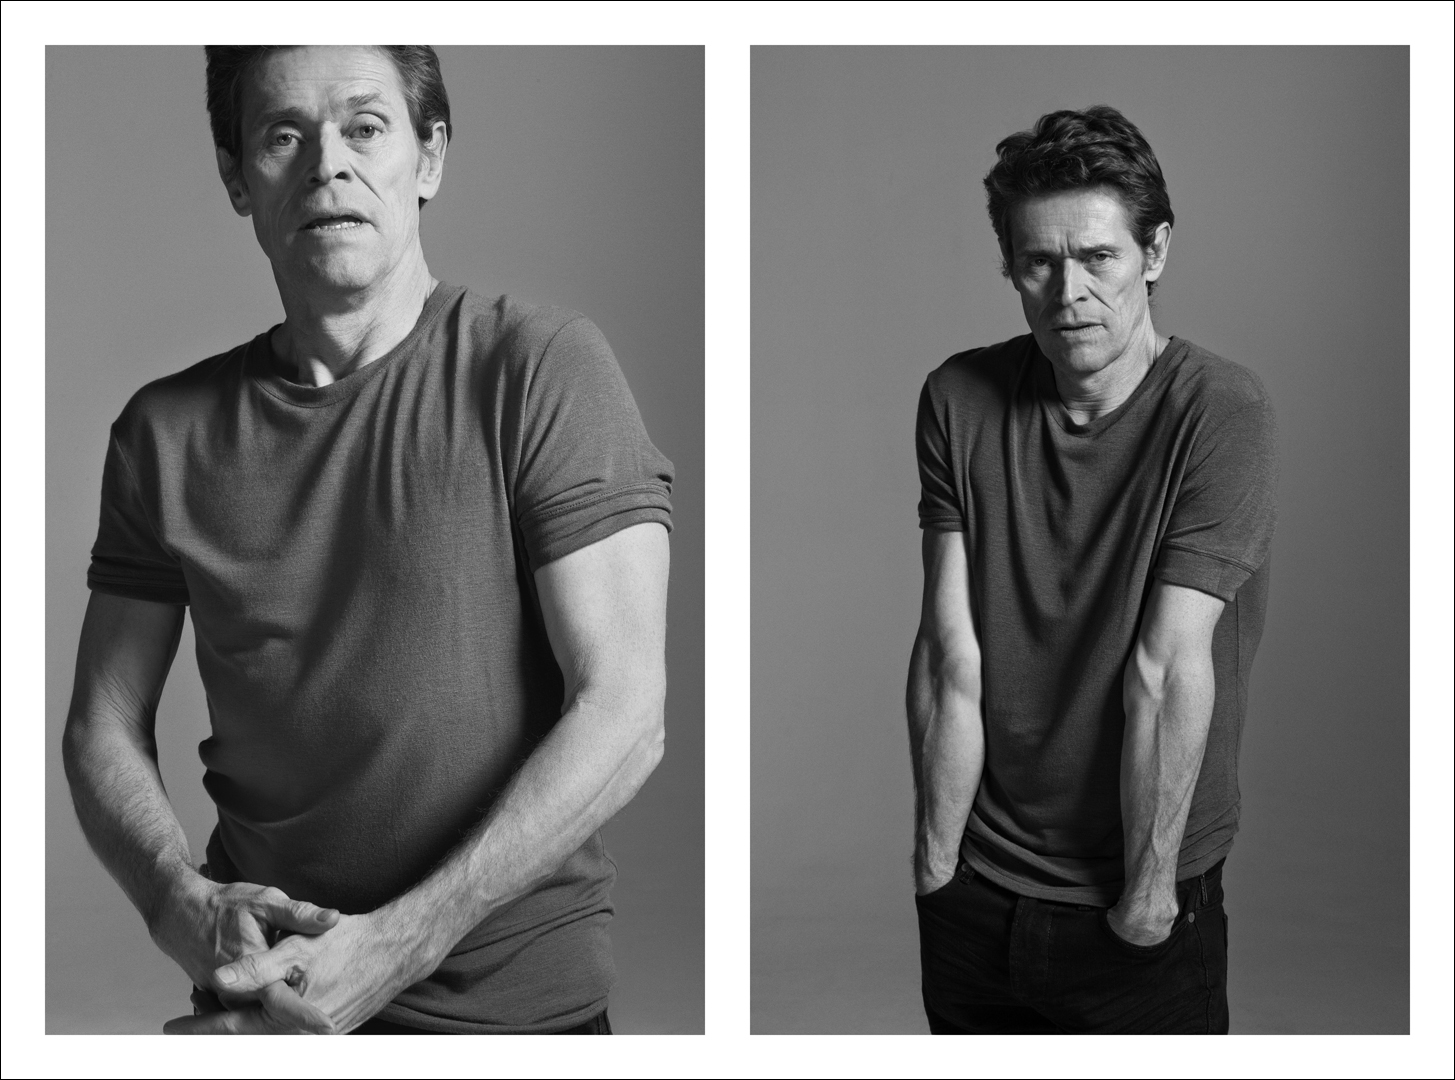 42_TIM_BARBER_WILLEM_DAFOE.jpg